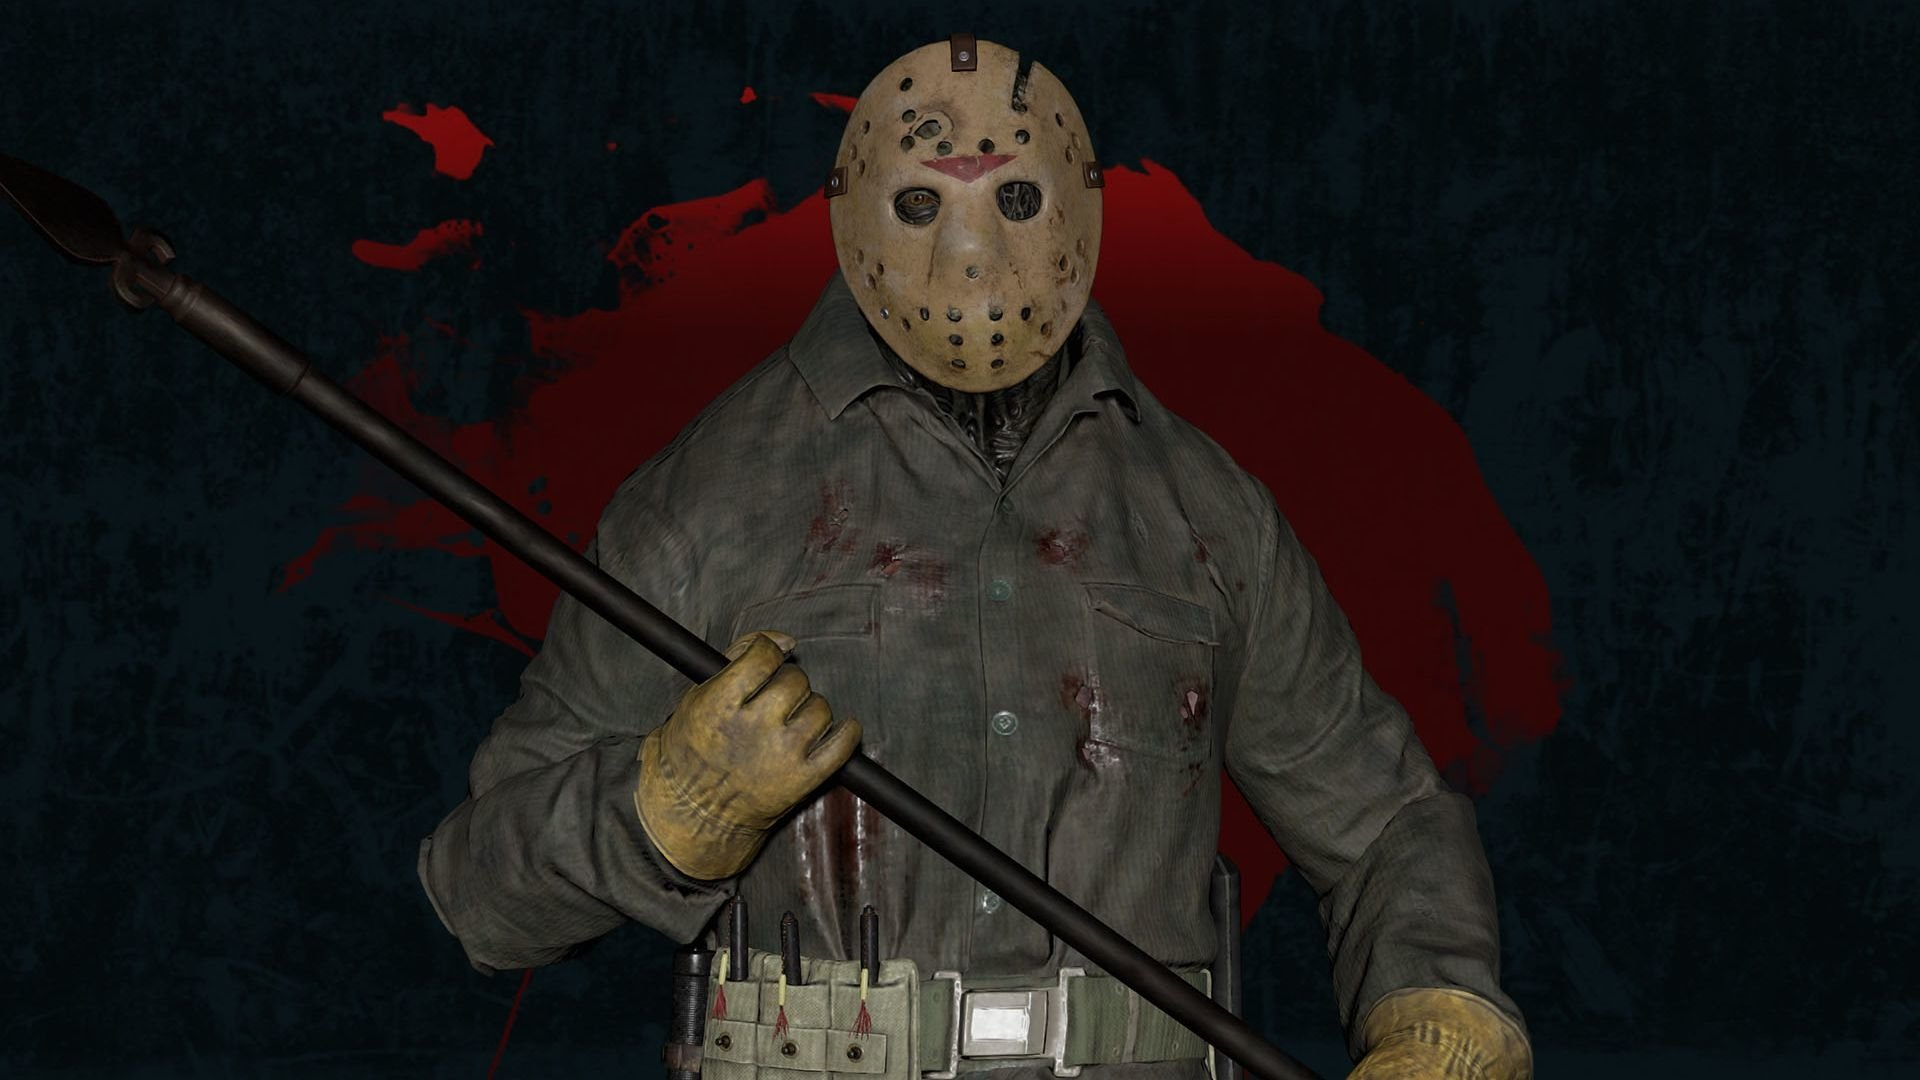 Friday The 13th The Game Wallpaper: Friday The 13th: The Game HD Wallpaper